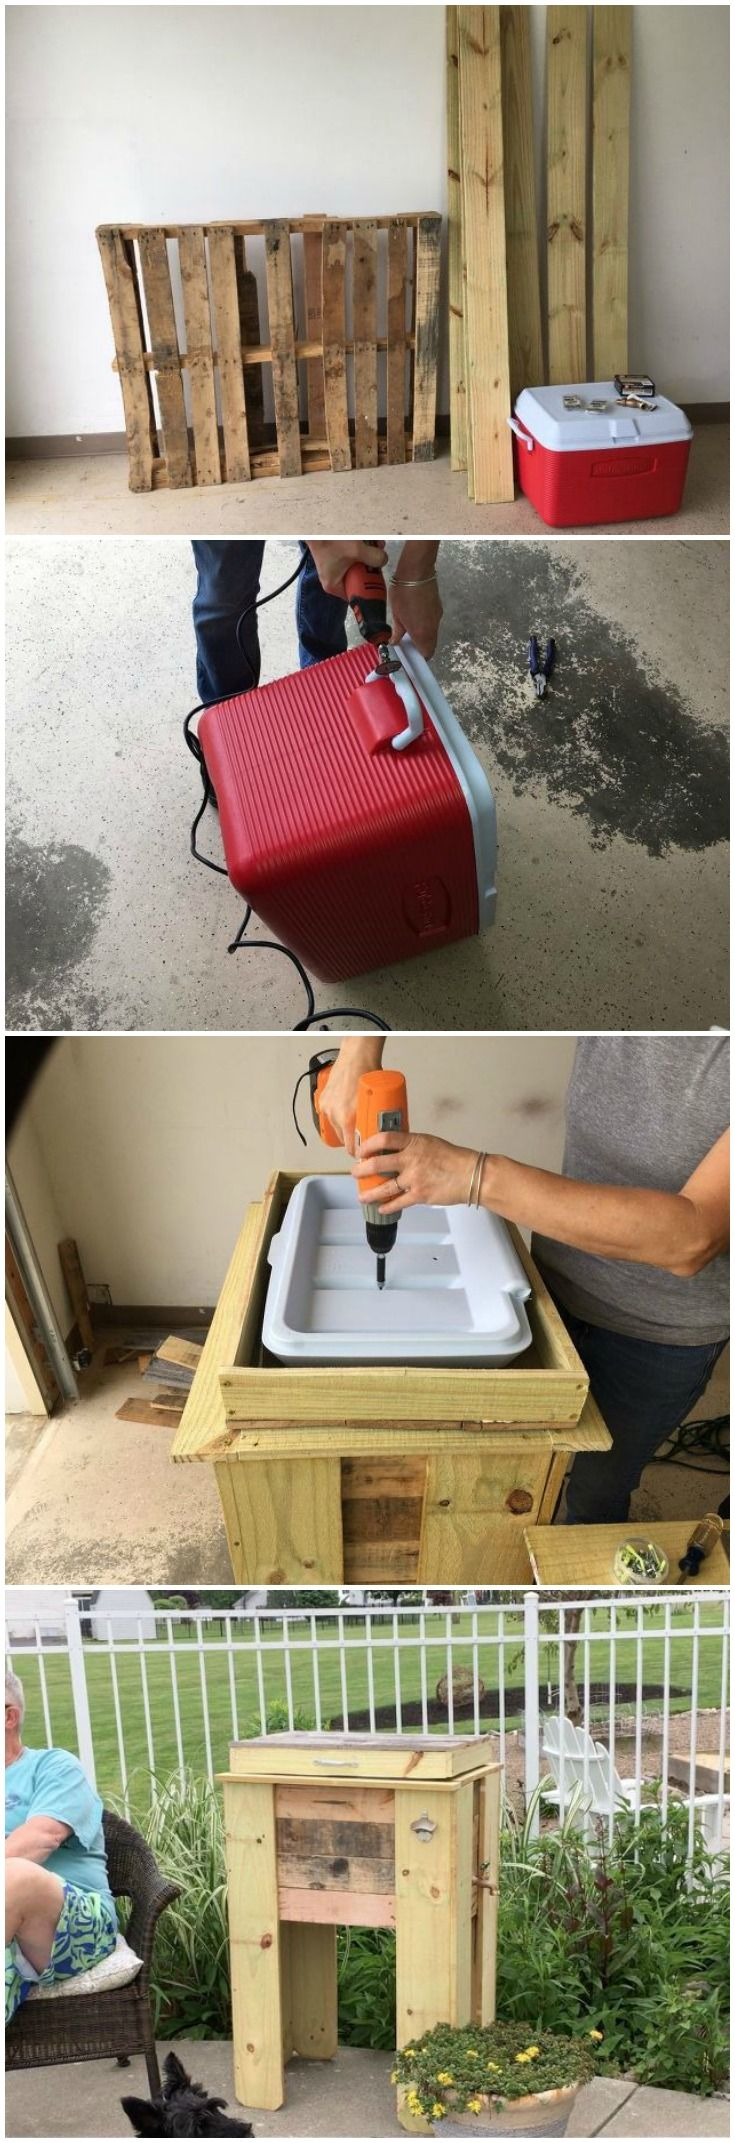 Rustic cooler stand using pallets - Serving drinks outside? Using one of those ugly plastic coolers? Here's a way to turn that ugly cooler into something cool-er :)